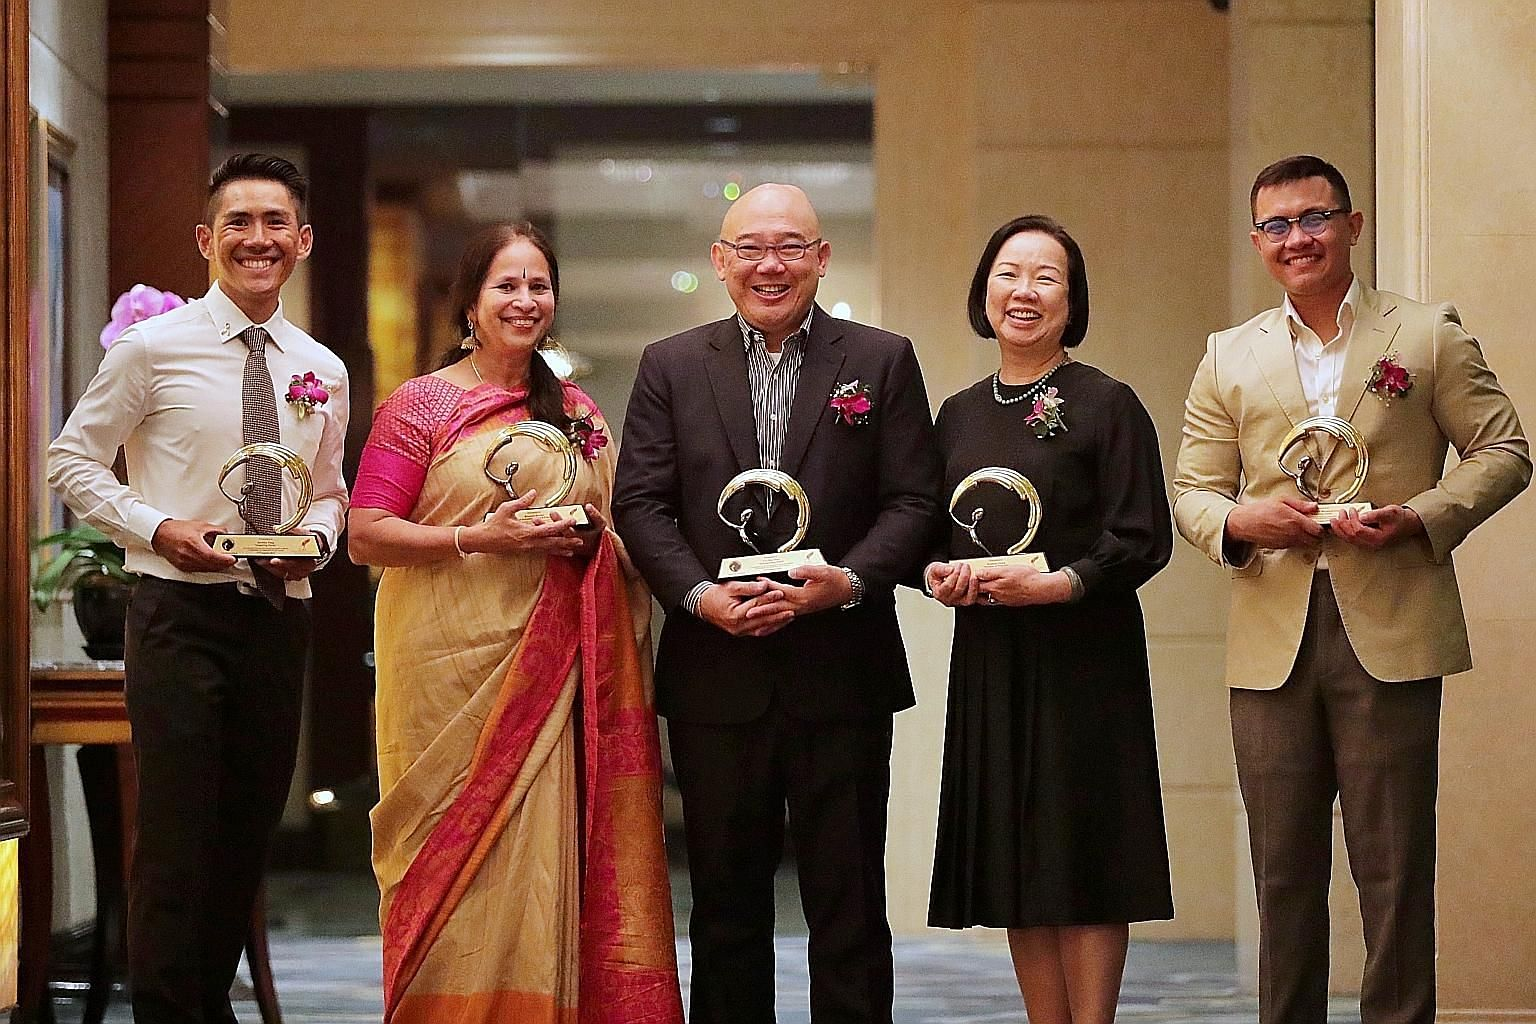 The five winners of last year's Singapore Silent Heroes Awards were (from left) Mr Jeremy Tong, Dr Bhavani Sriram, Mr Foo Say Thye, Madam Rowena Leong and Mr Aminur Rasyid Mohamed Anwar. The Civilians Association of Singapore confers these awards on